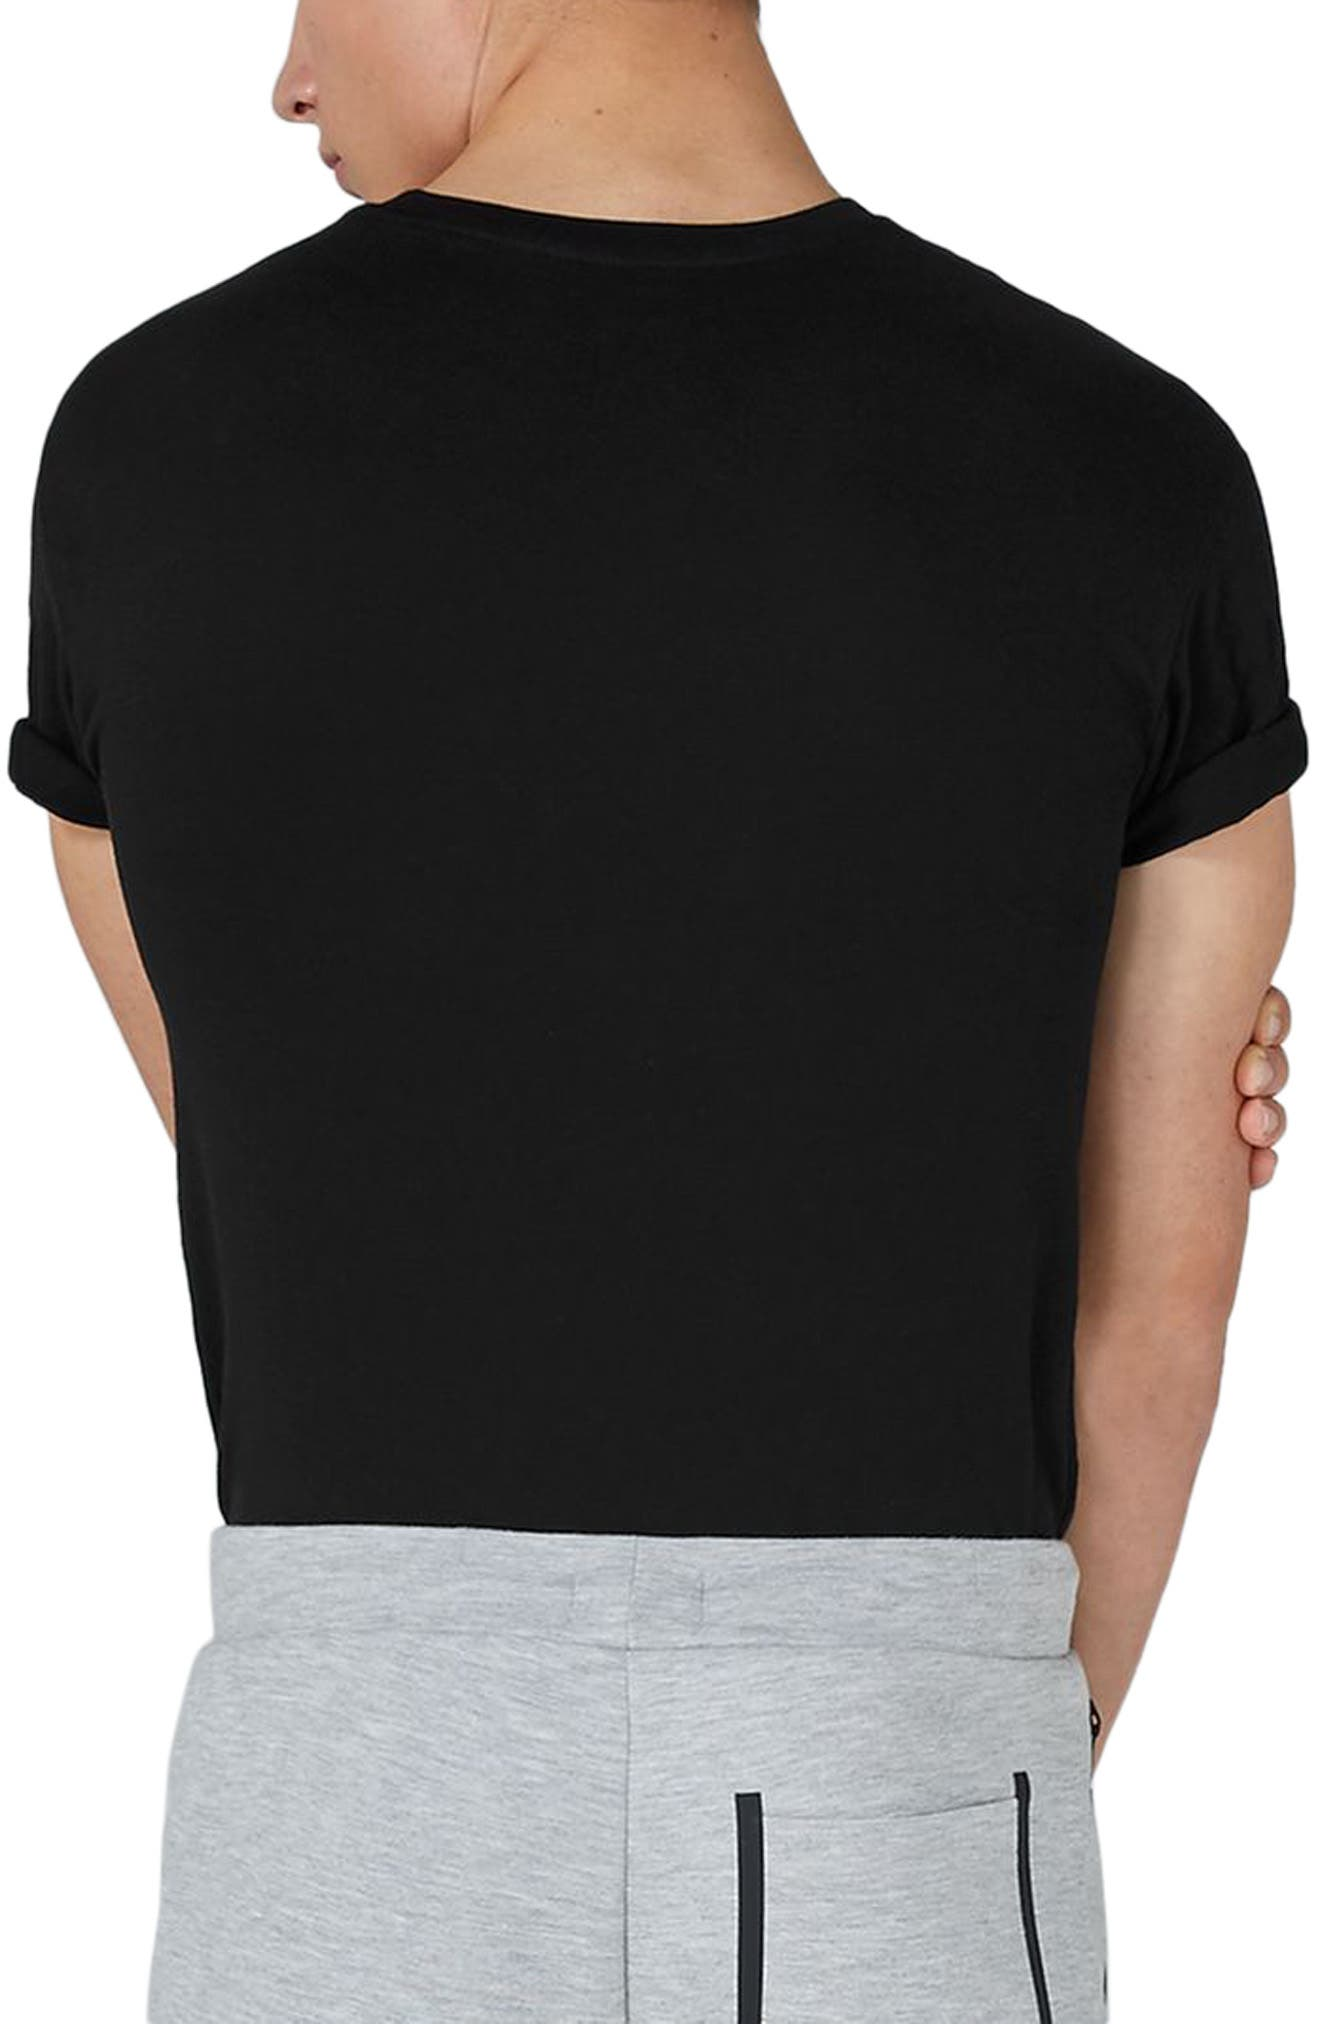 Muscle Fit Roller T-Shirt,                             Alternate thumbnail 2, color,                             001